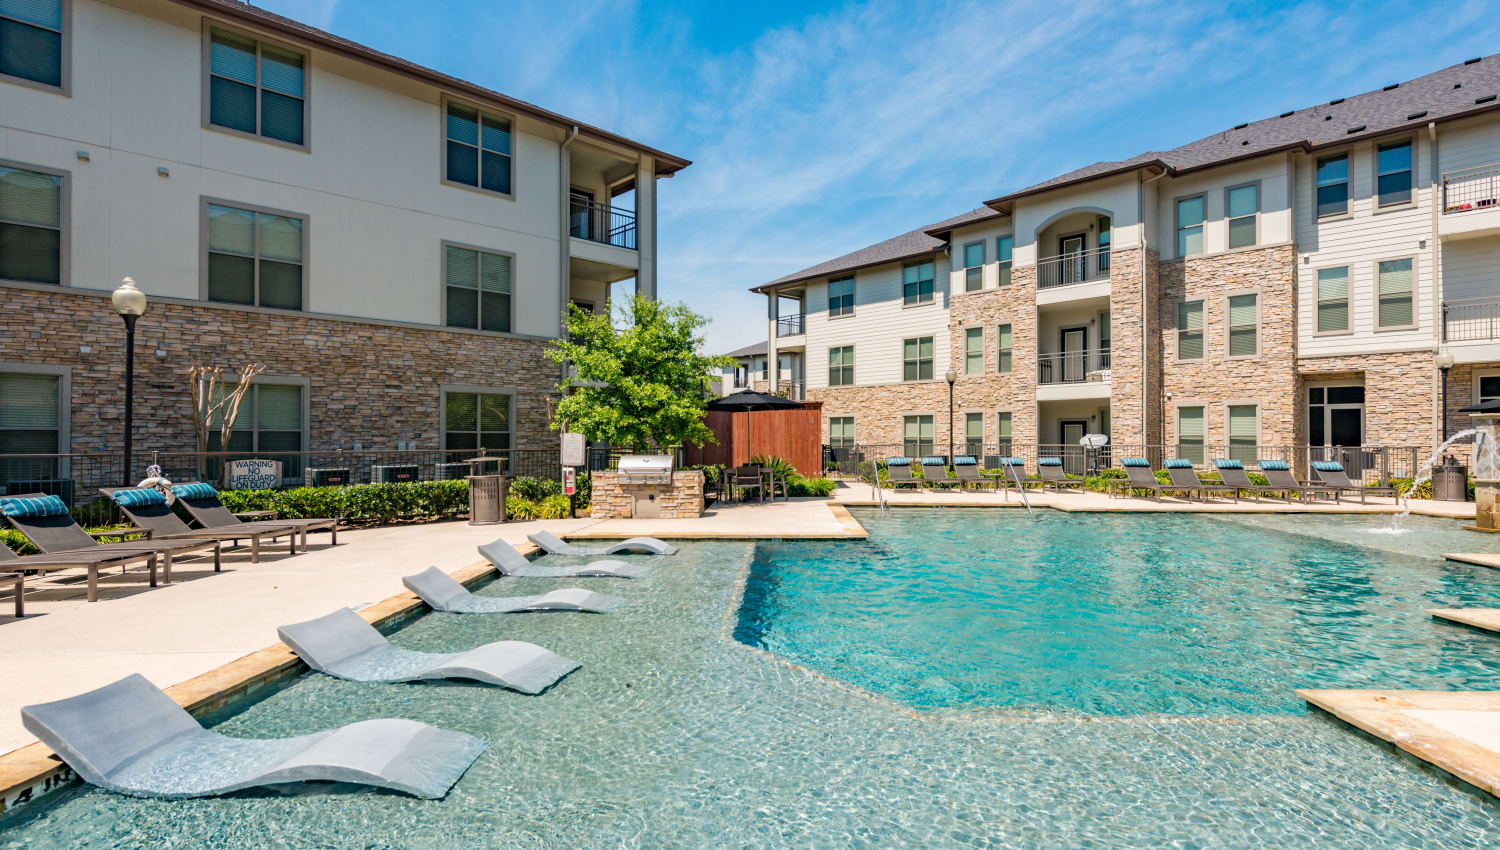 Dazzling blue pool with luxury lounge area at Olympus at Waterside Estates in Richmond, Texas